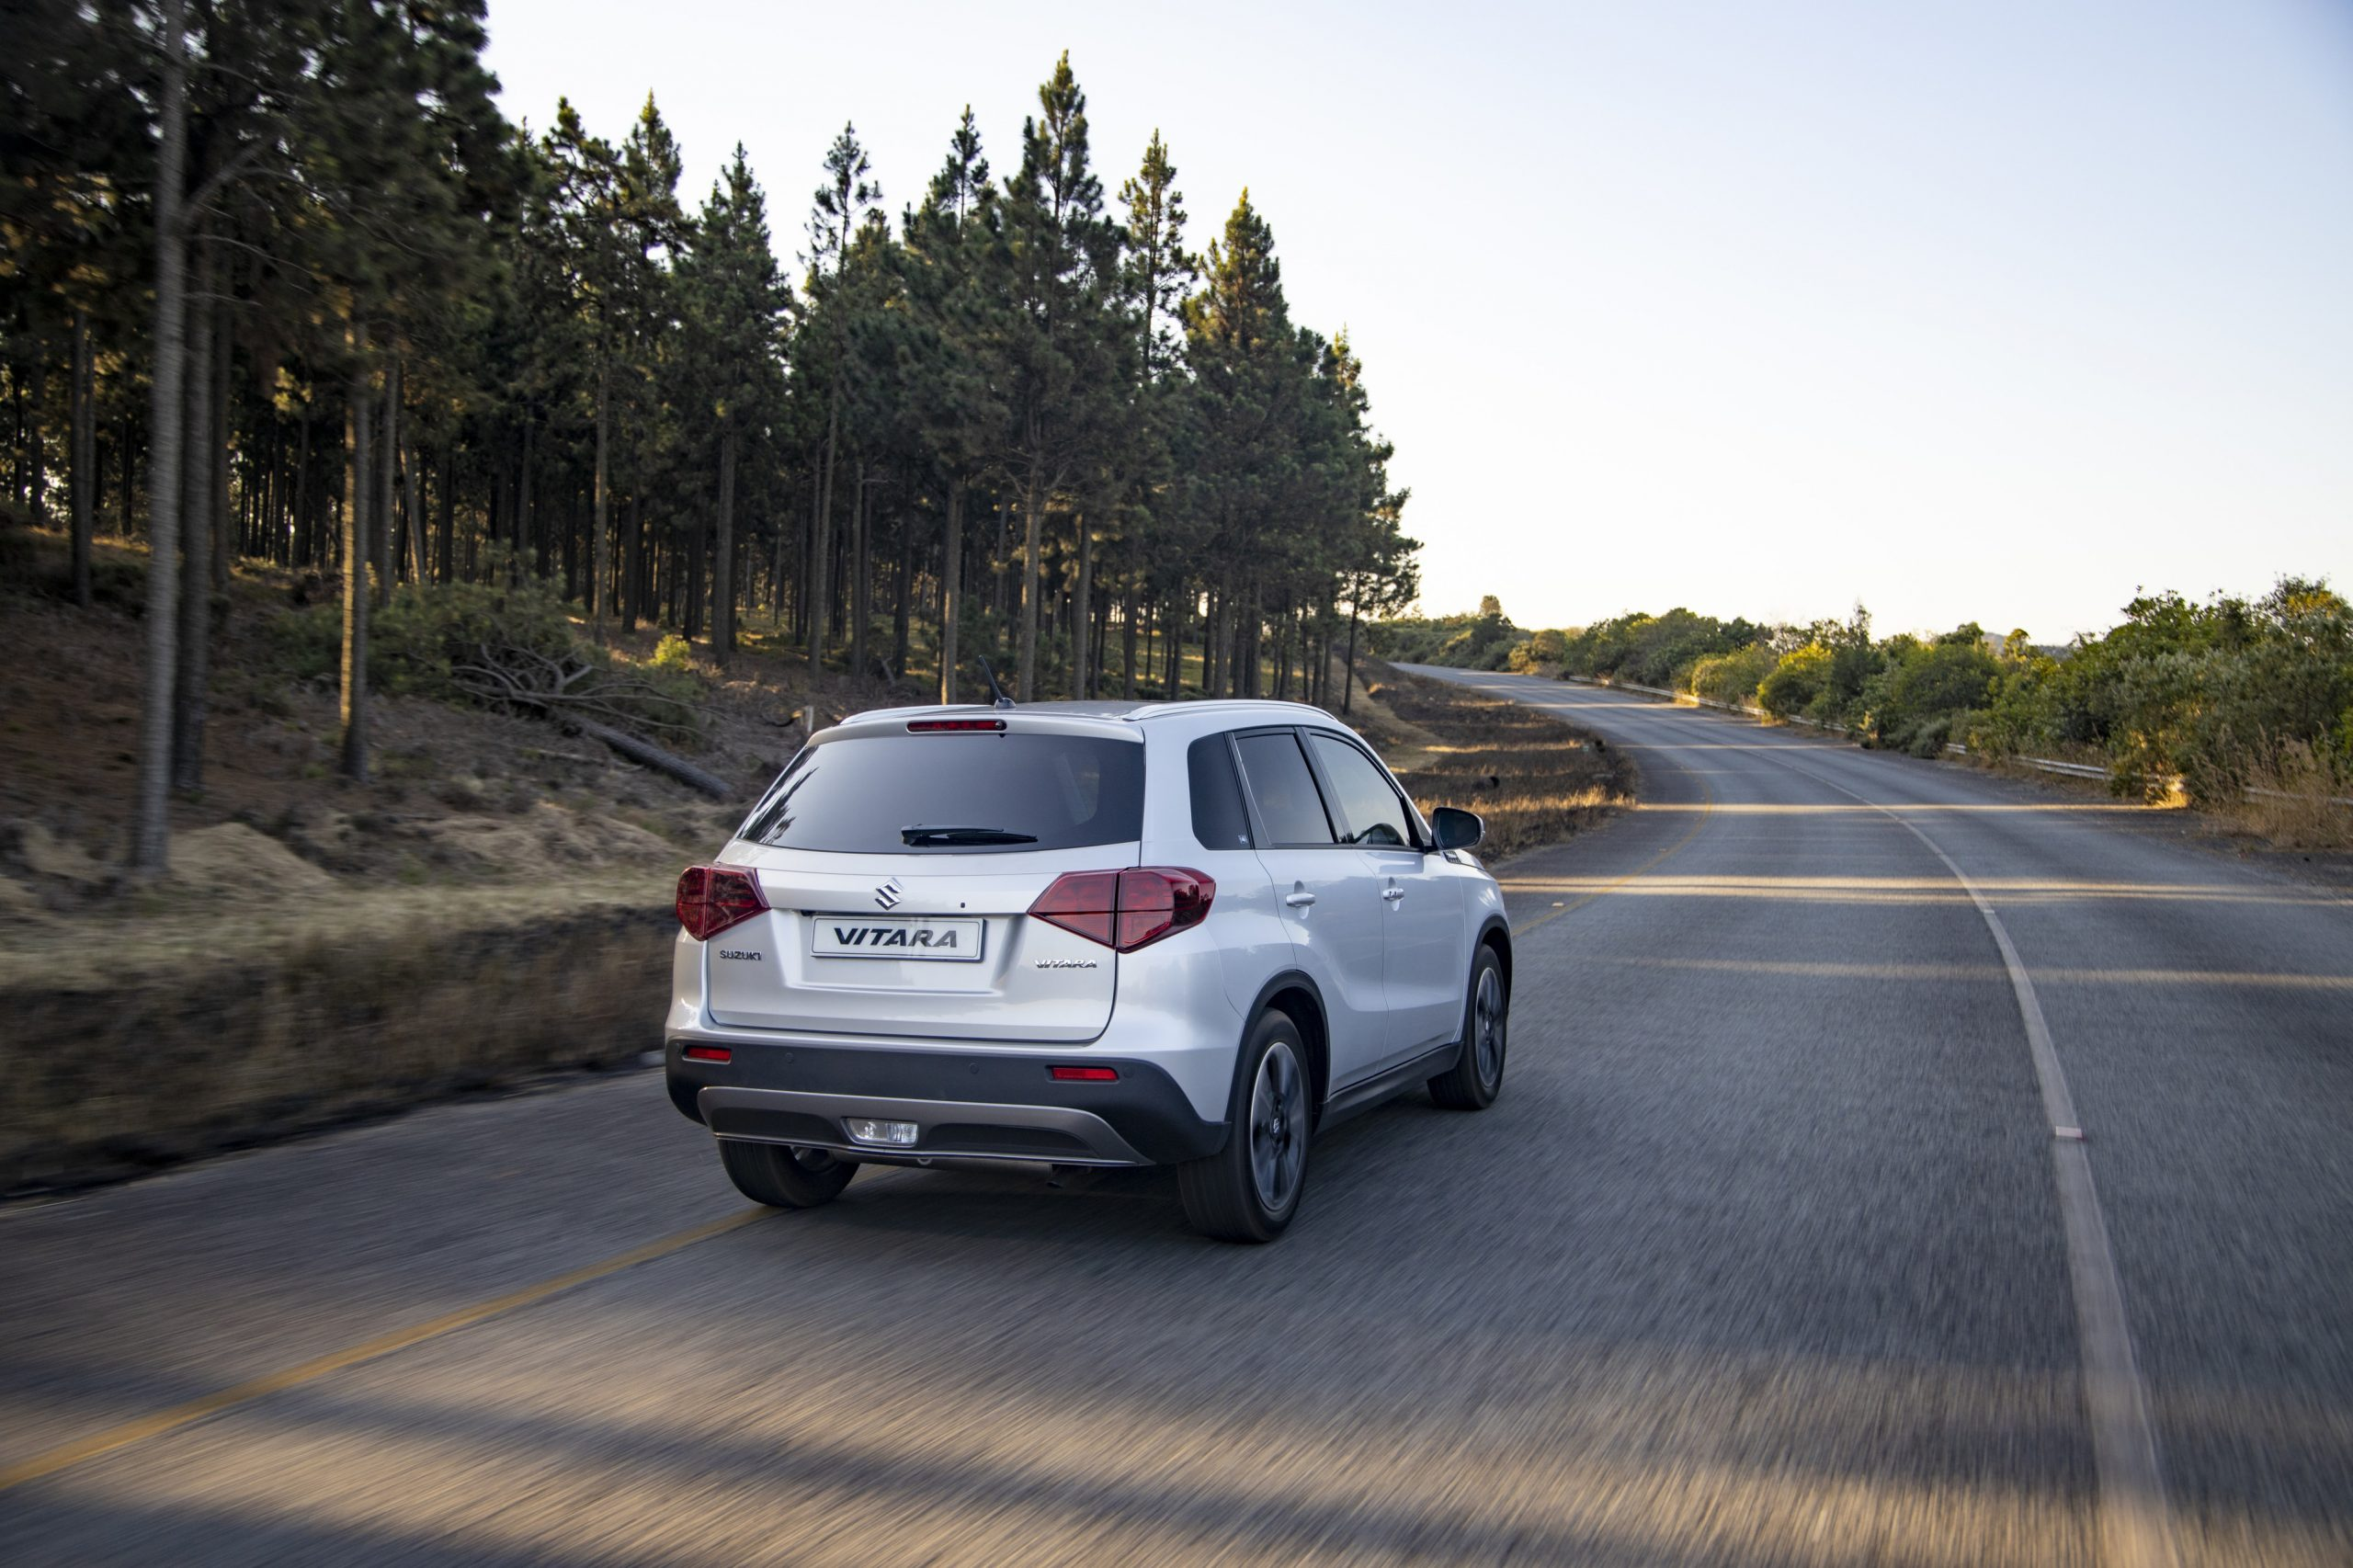 Suzuki | Vitara 1.4 turbo GLX | compact SUV | car review